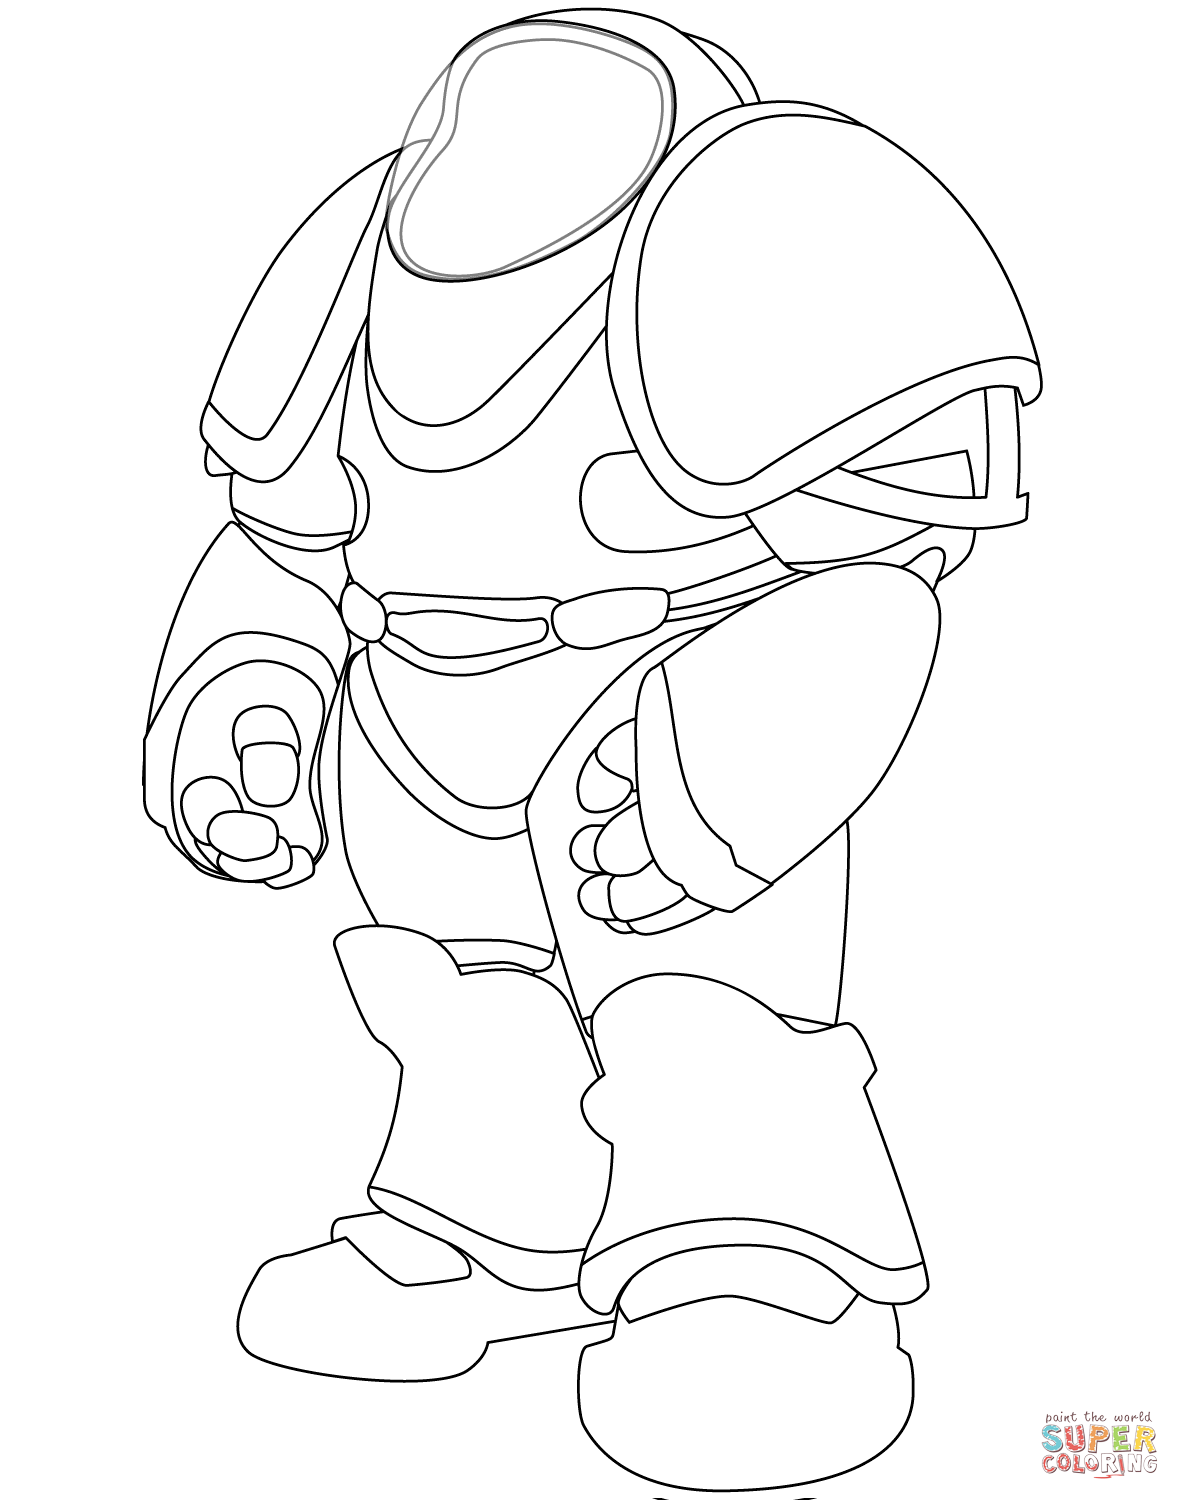 Space coloring #1, Download drawings